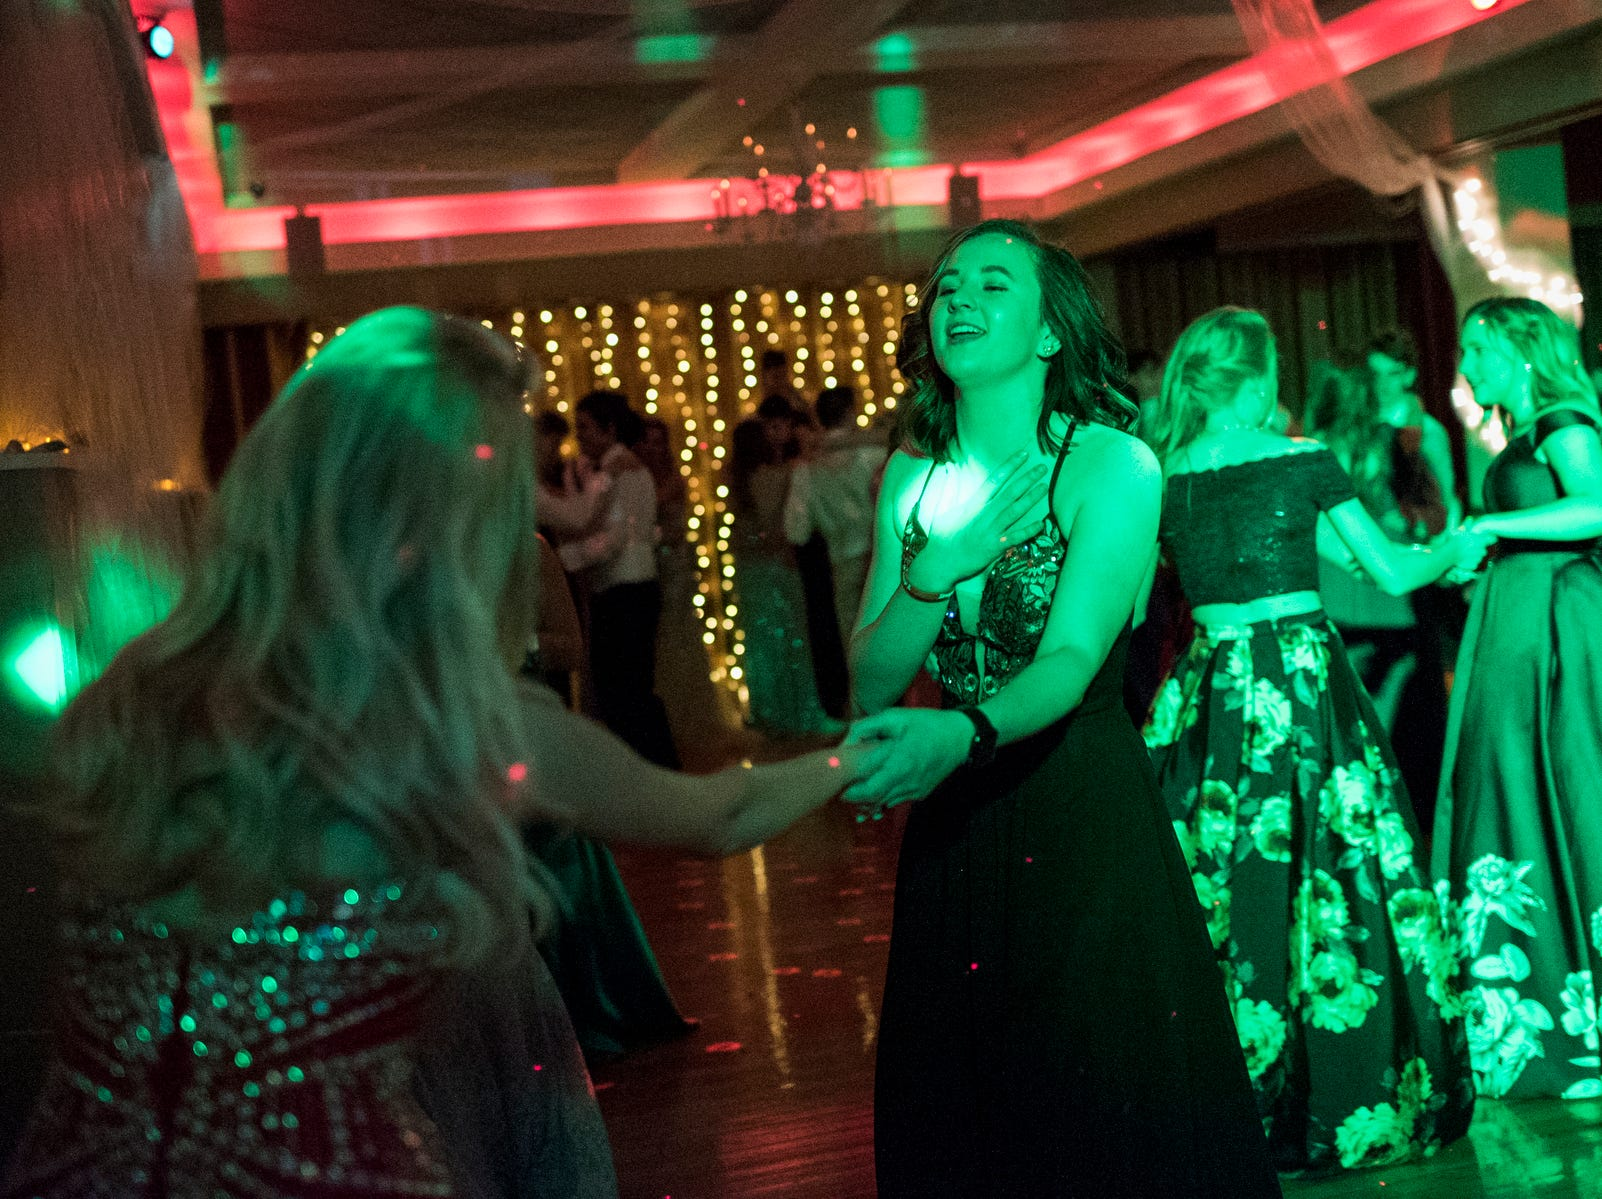 Josefine Trulsson, left, and Lexi Albin, right, dance together during Evansville Day School's prom held at the Hadi Shrine Banquet Hall in downtown Evansville, Ind., Saturday, April 27, 2019.